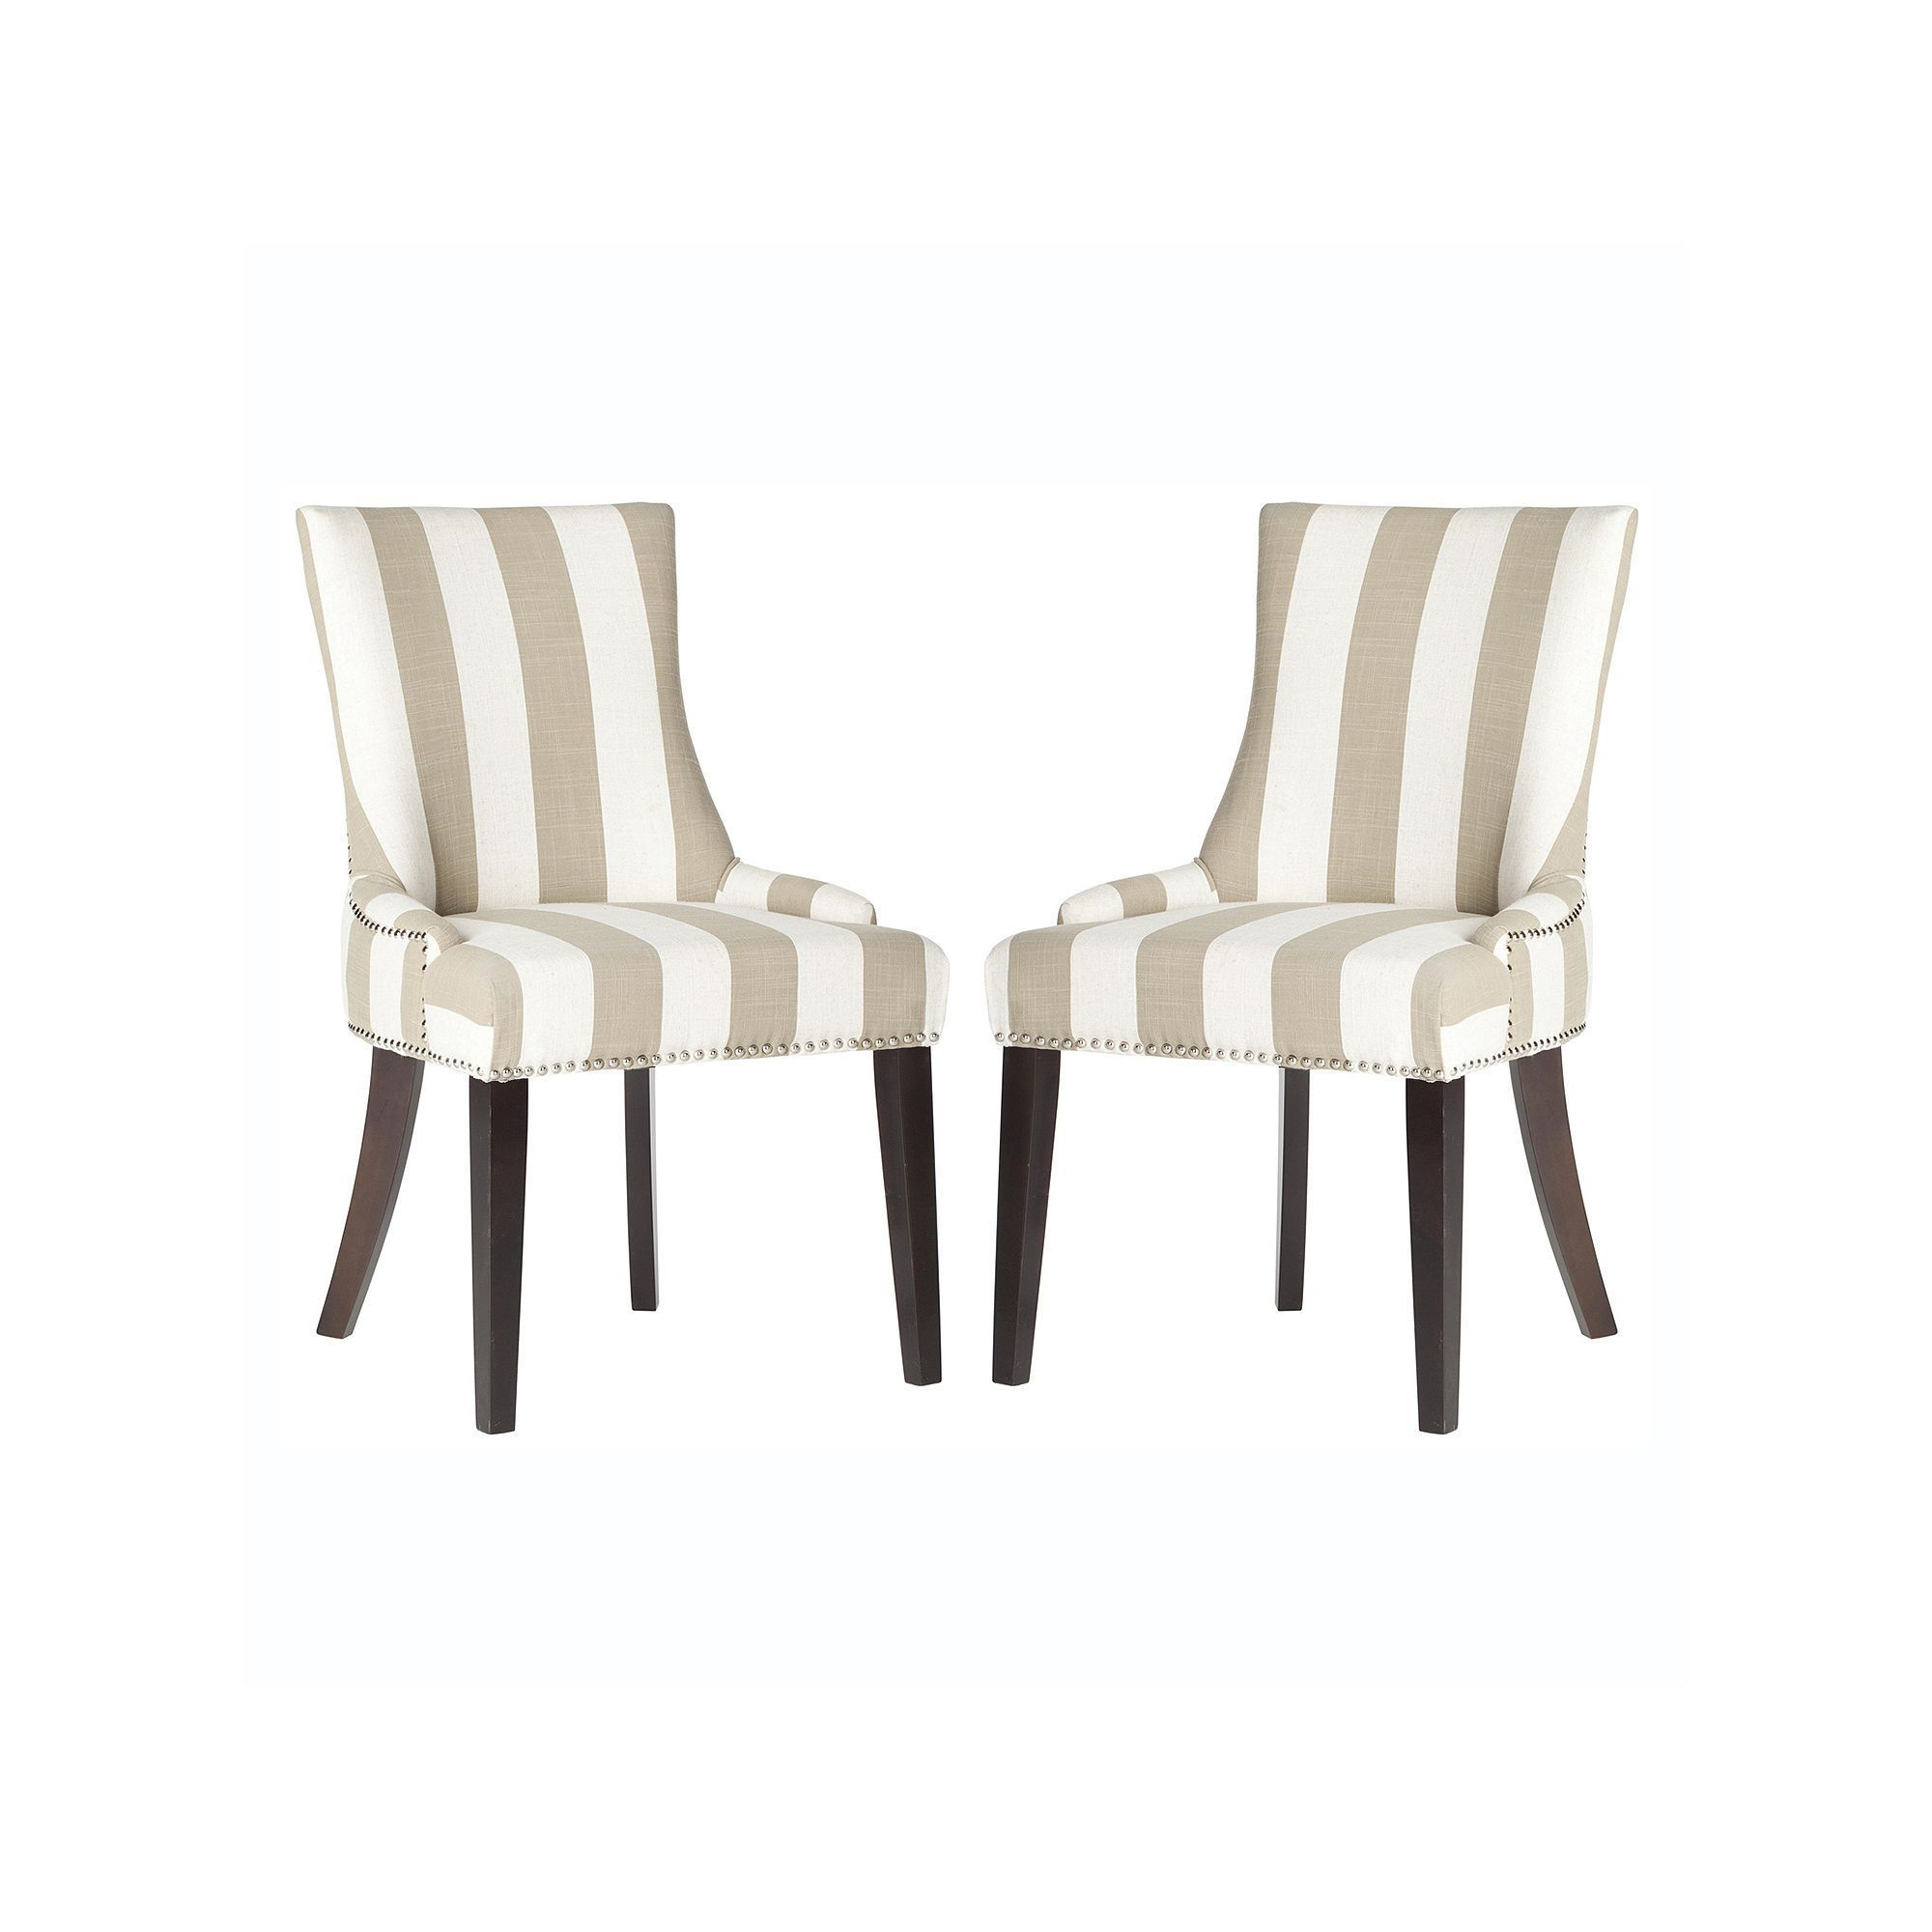 Safavieh 2 Piece Lester Dining Chair Set Multicolor Dining